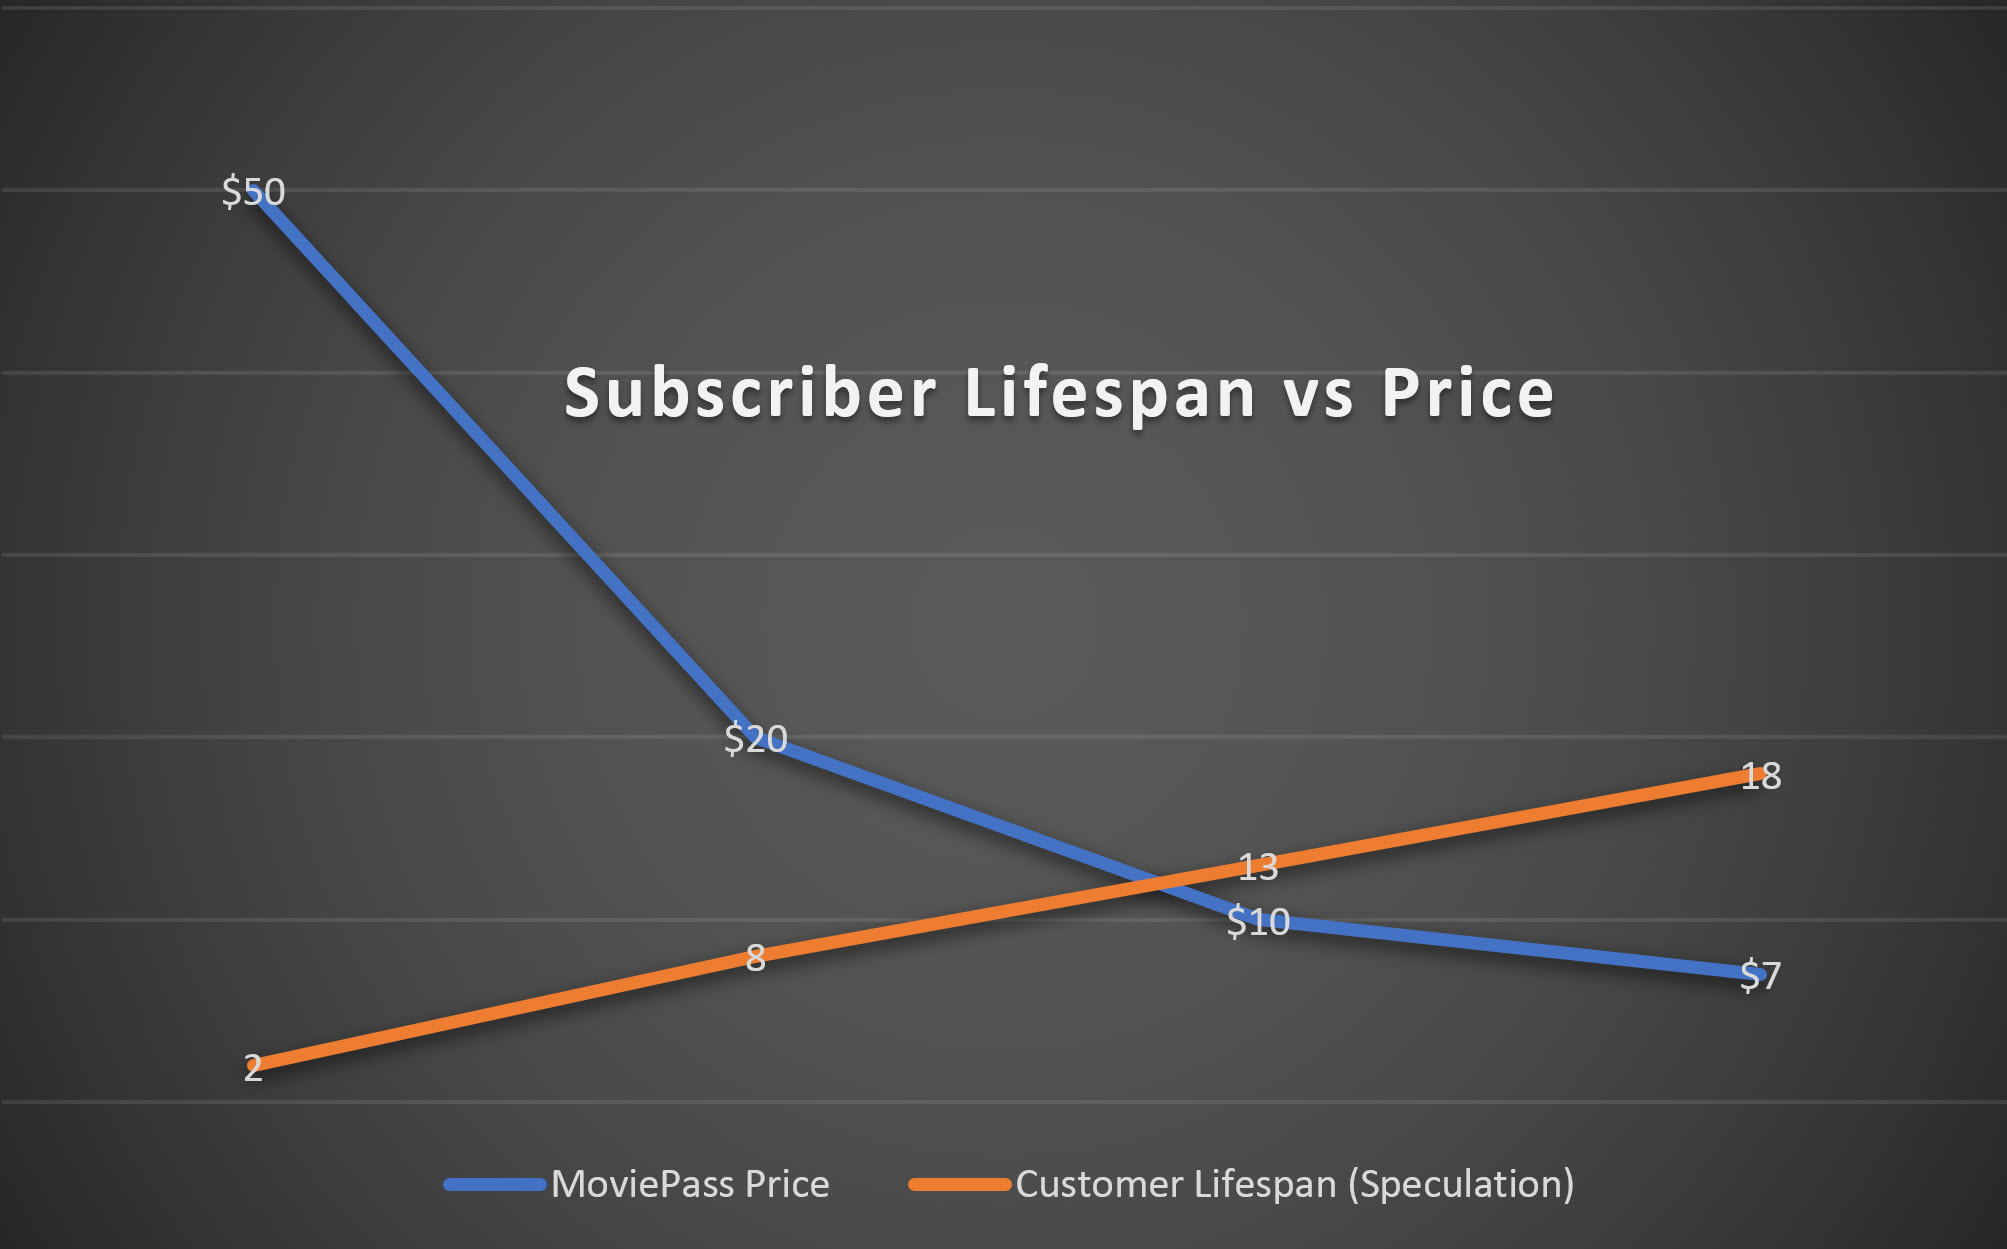 MoviePass Subscriber vs Pricve